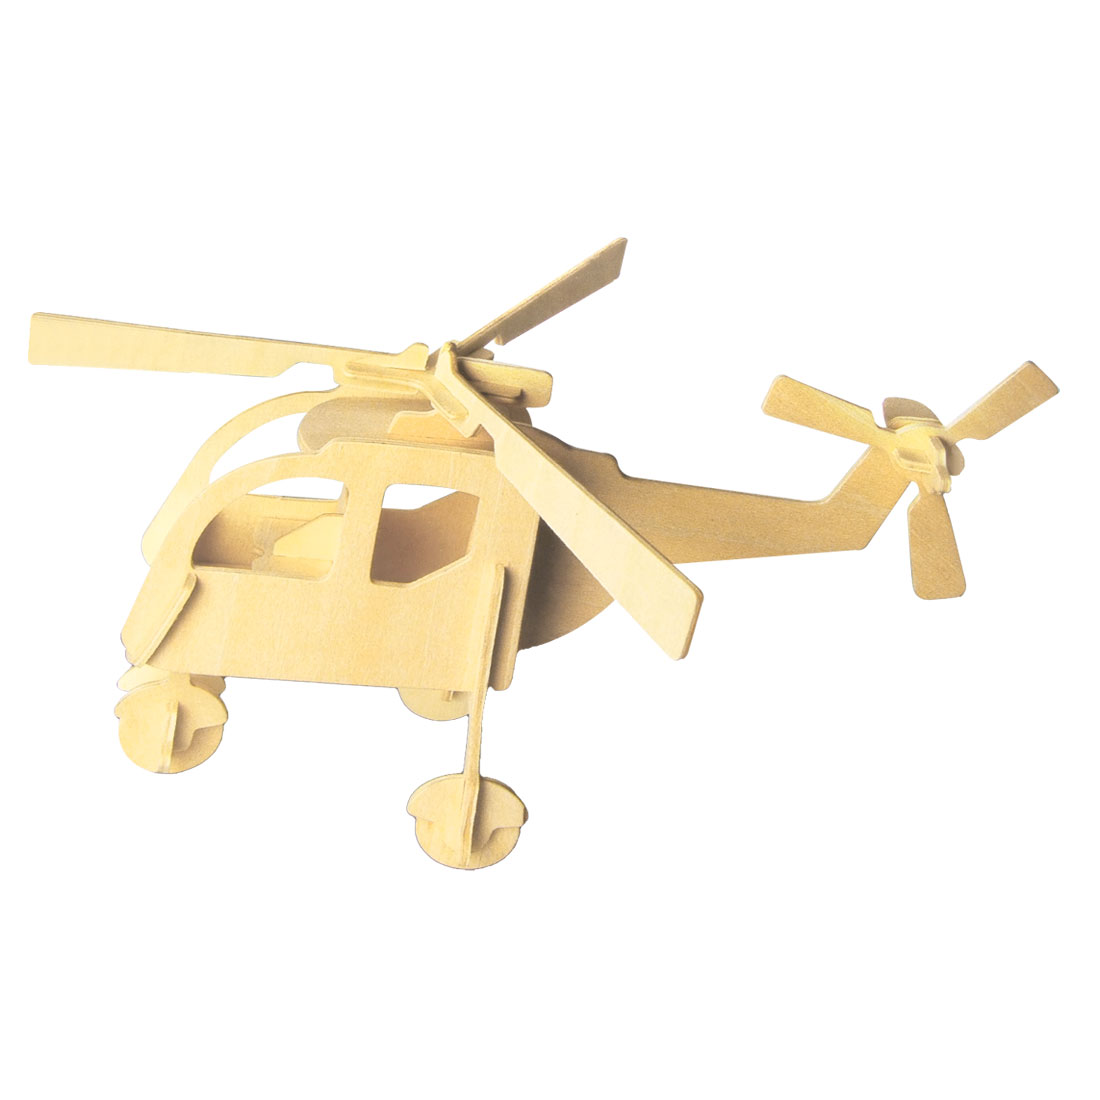 Child DIY Wooden 3D Helicopter Model Construction Kit Puzzle Toy